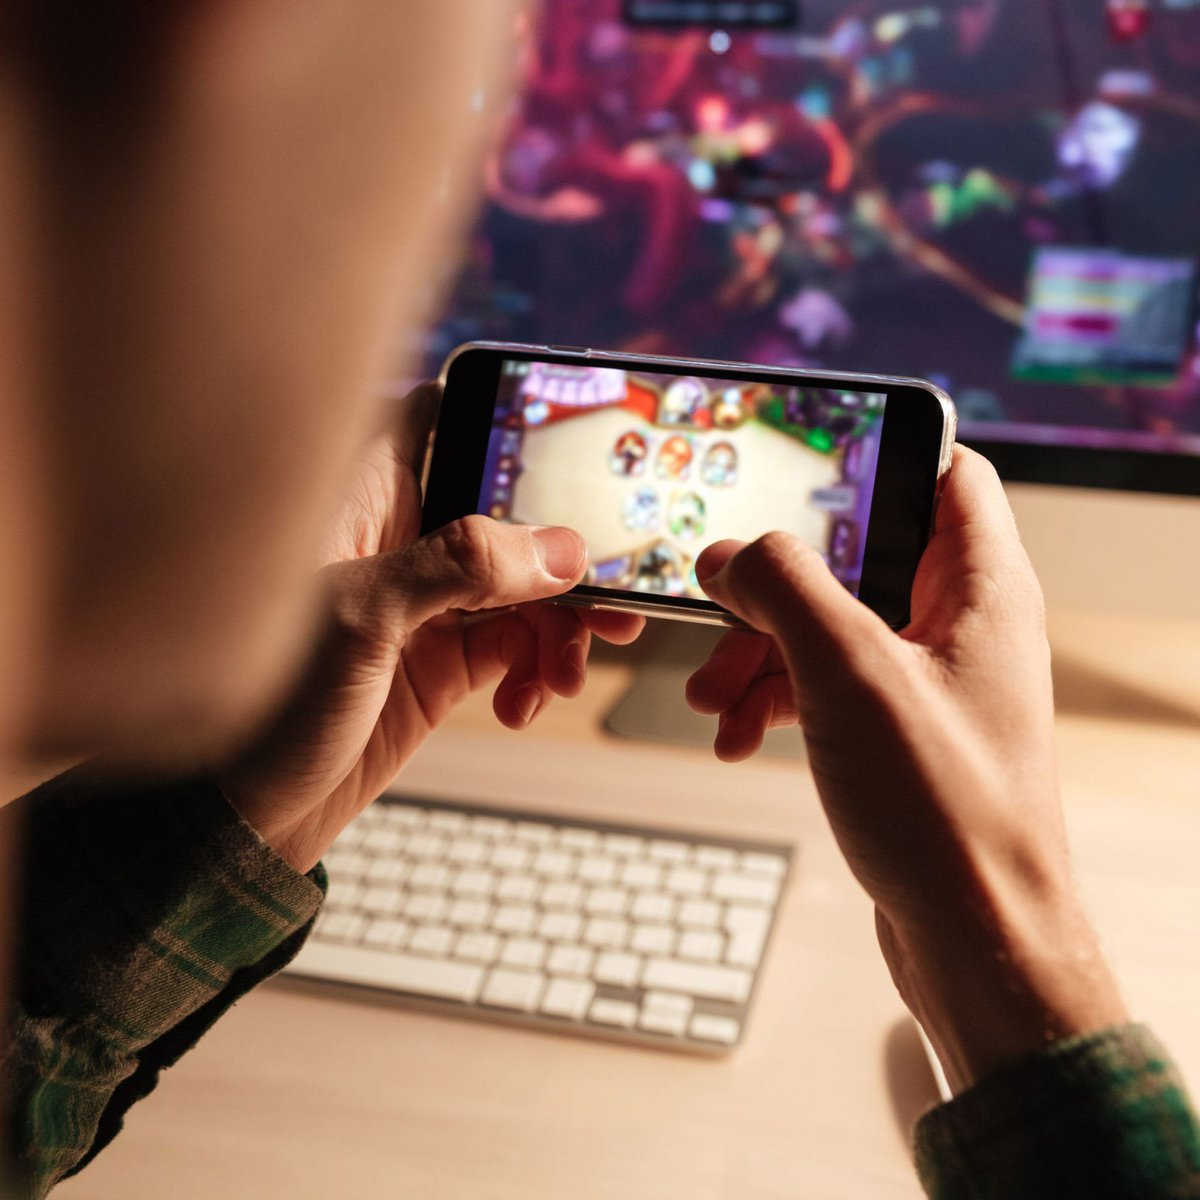 95% of gamers willing to pay more for #5G services if it means better playing https://t.co/L04su1Az1m -- more on @ribboncomm's #Cloud Gaming research from   @rcrwirelessnews https://t.co/CCs9yLKBlm